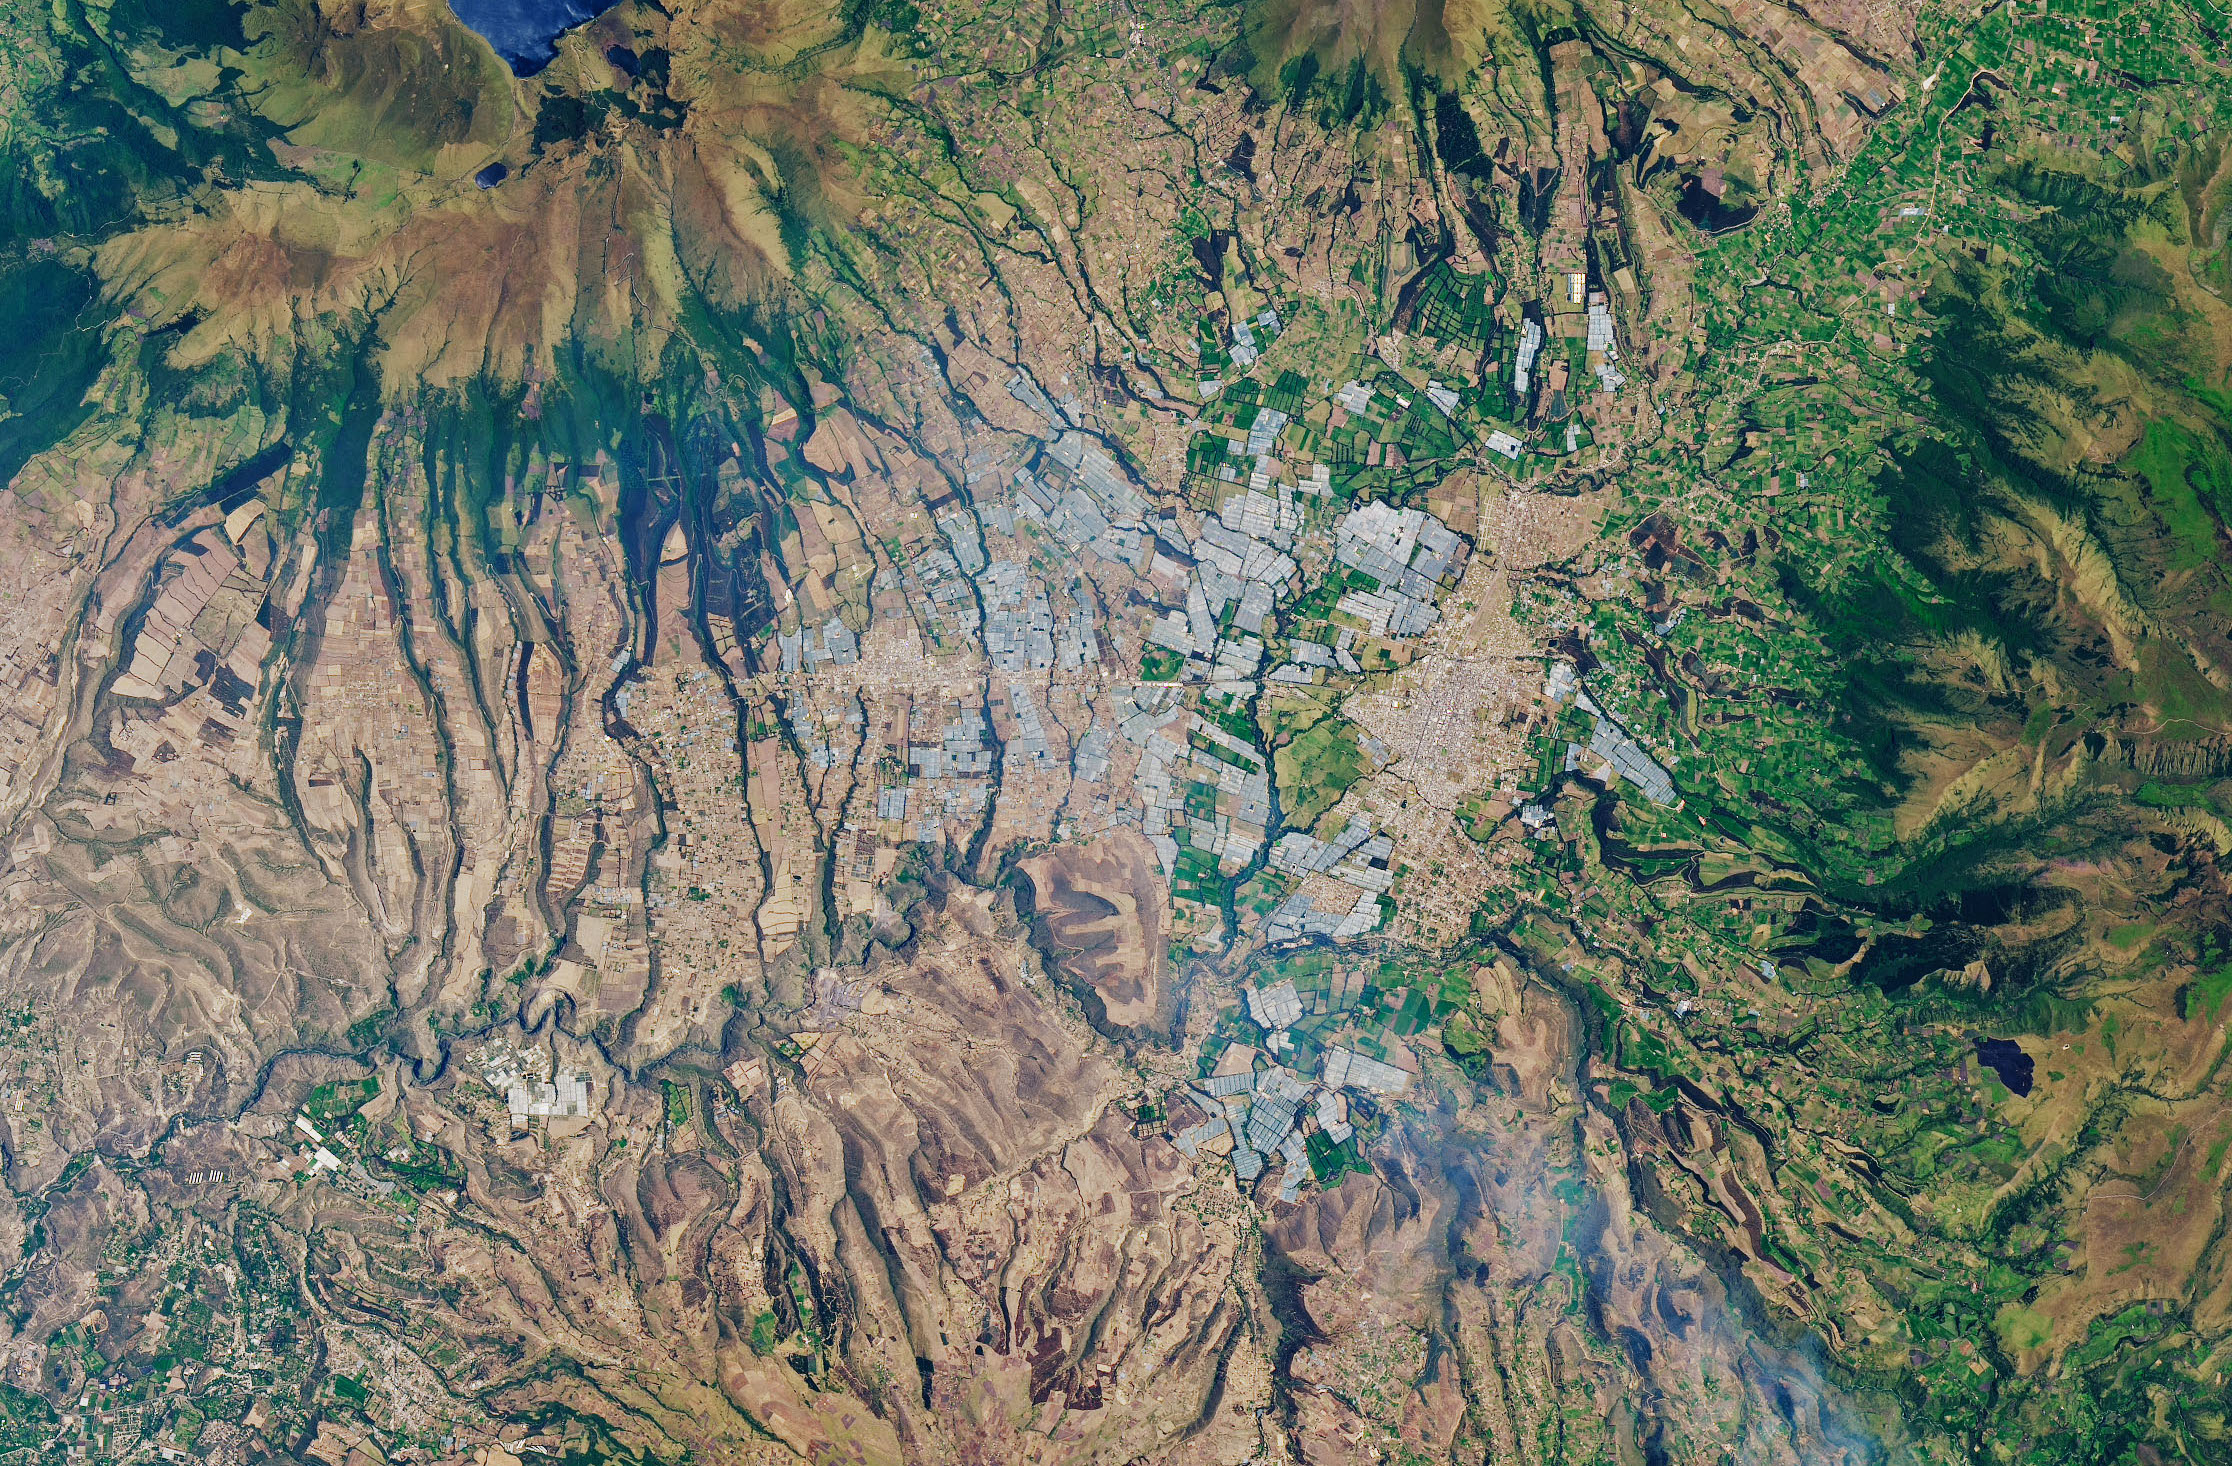 Today's Image of the Day comes from the NASA Earth Observatory and features a look at greenhouses in the Cayambe Valley of Ecuador's Northern Highlands.